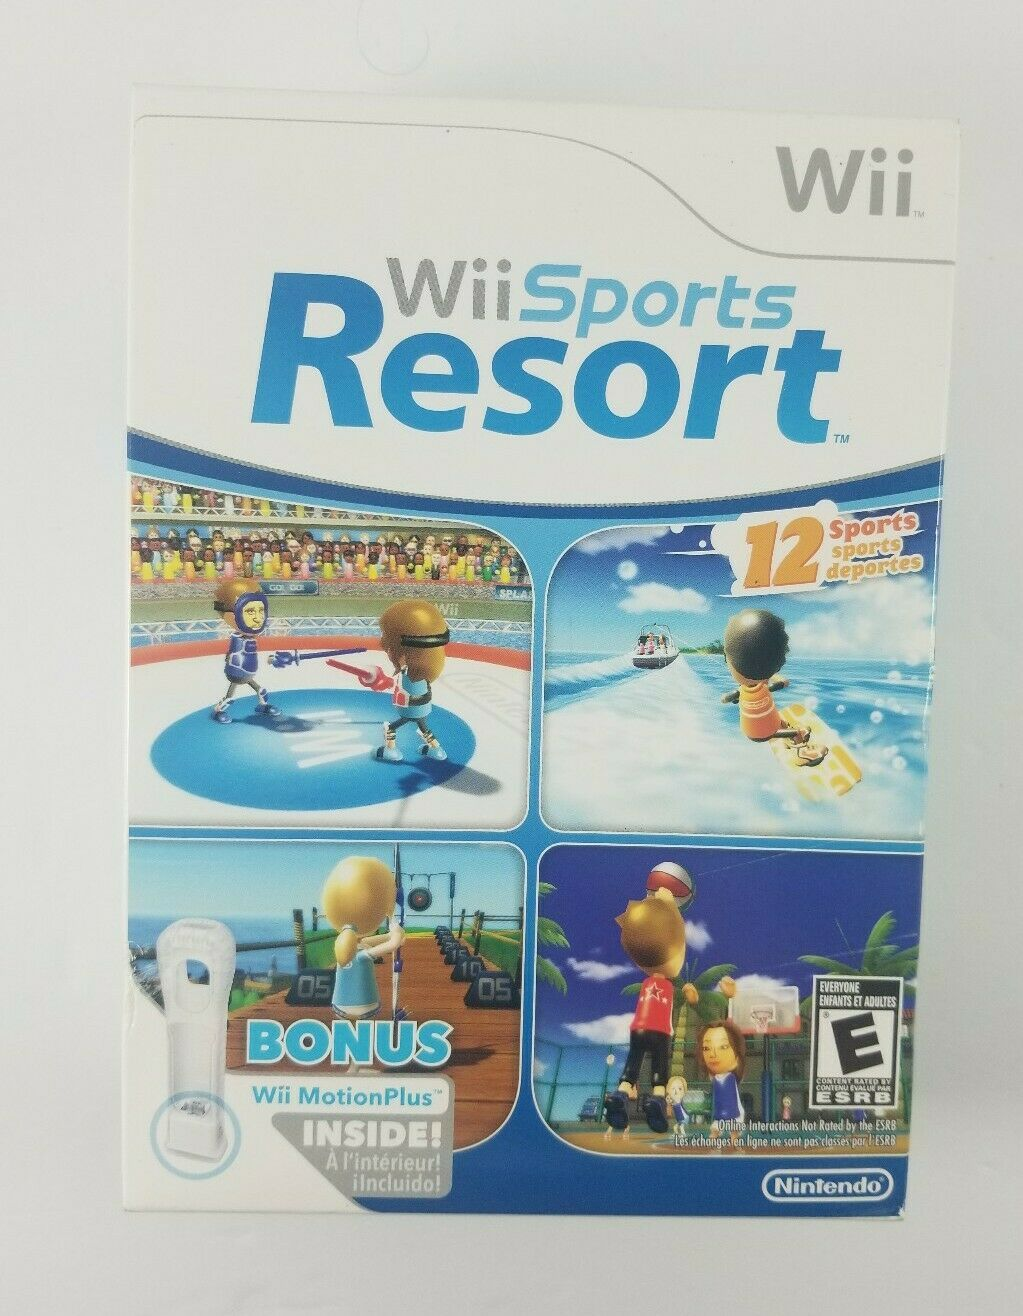 Primary image for Brand New Sealed Wii Sports Resort with Motion Plus Inside (Wii, 2009) 12 Sports